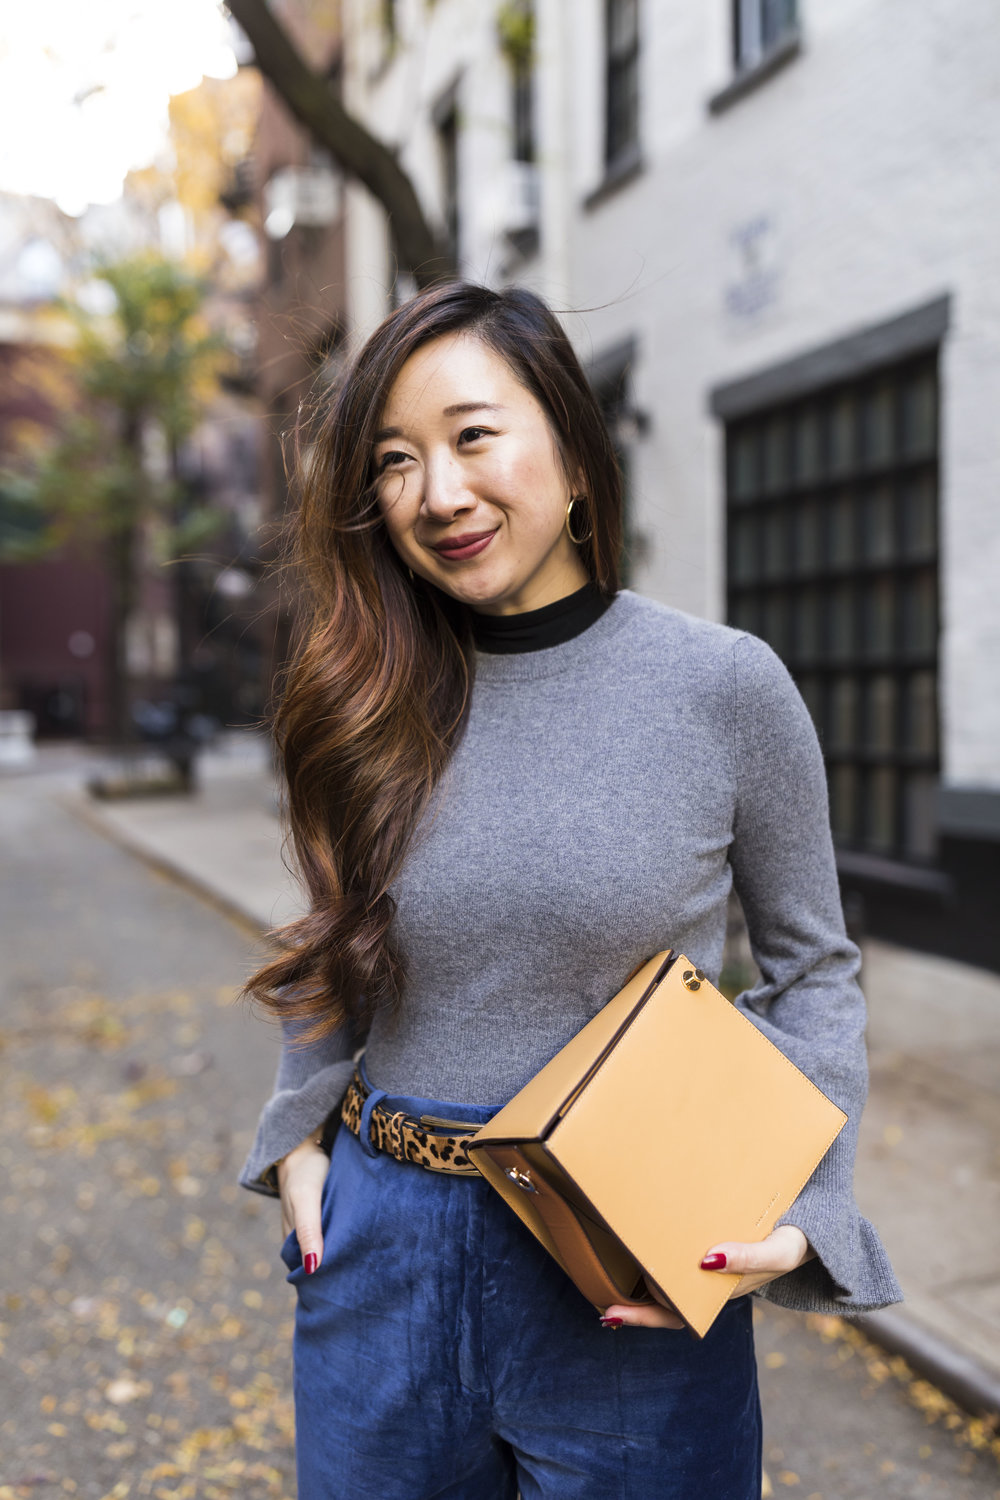 Wearing a grey W. Cashmere sweater. Photo by Ashley Gallerani.